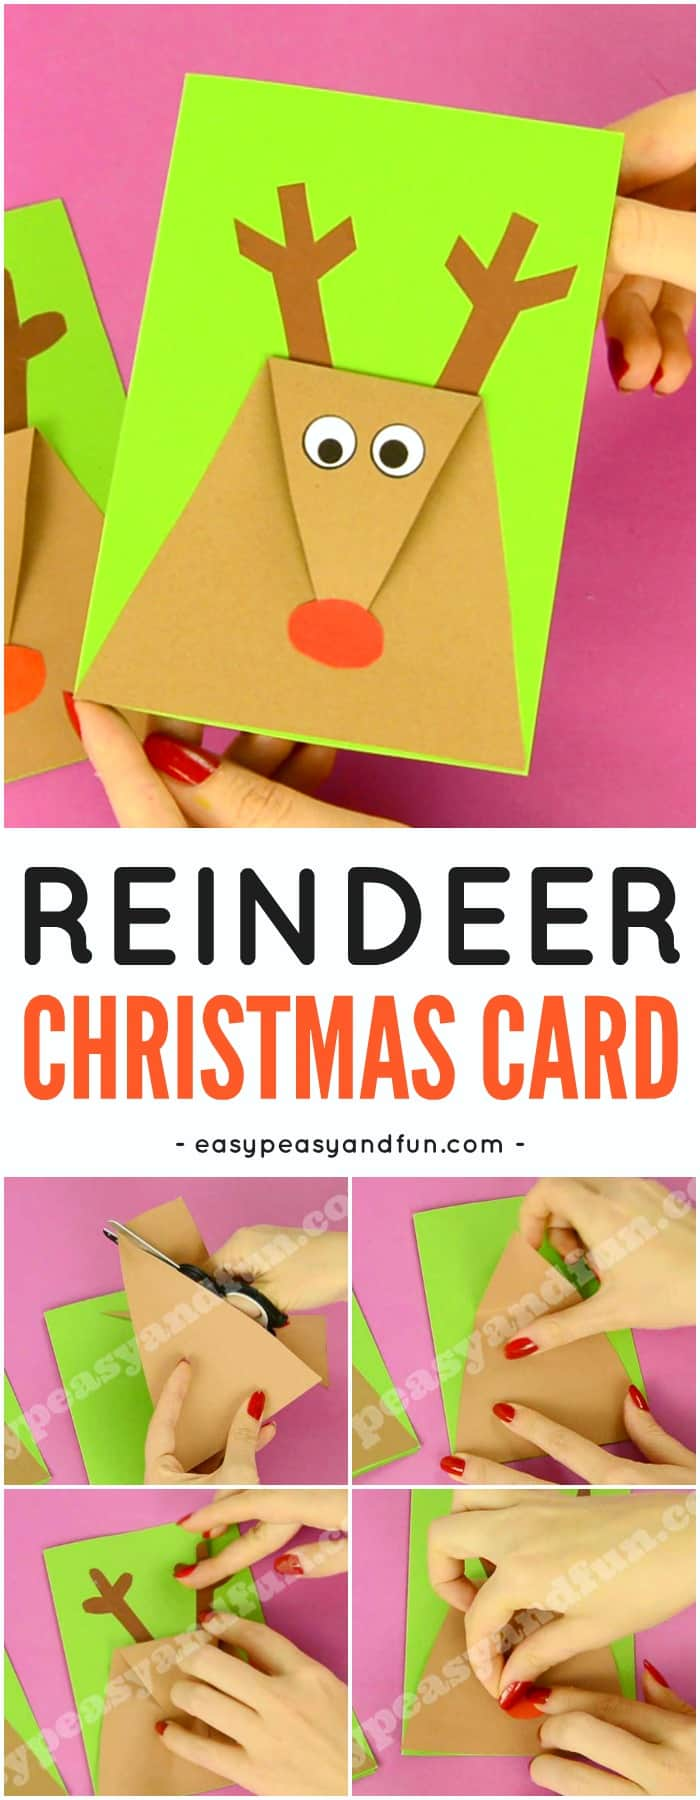 Reindeer Christmas Card - Easy Peasy and Fun